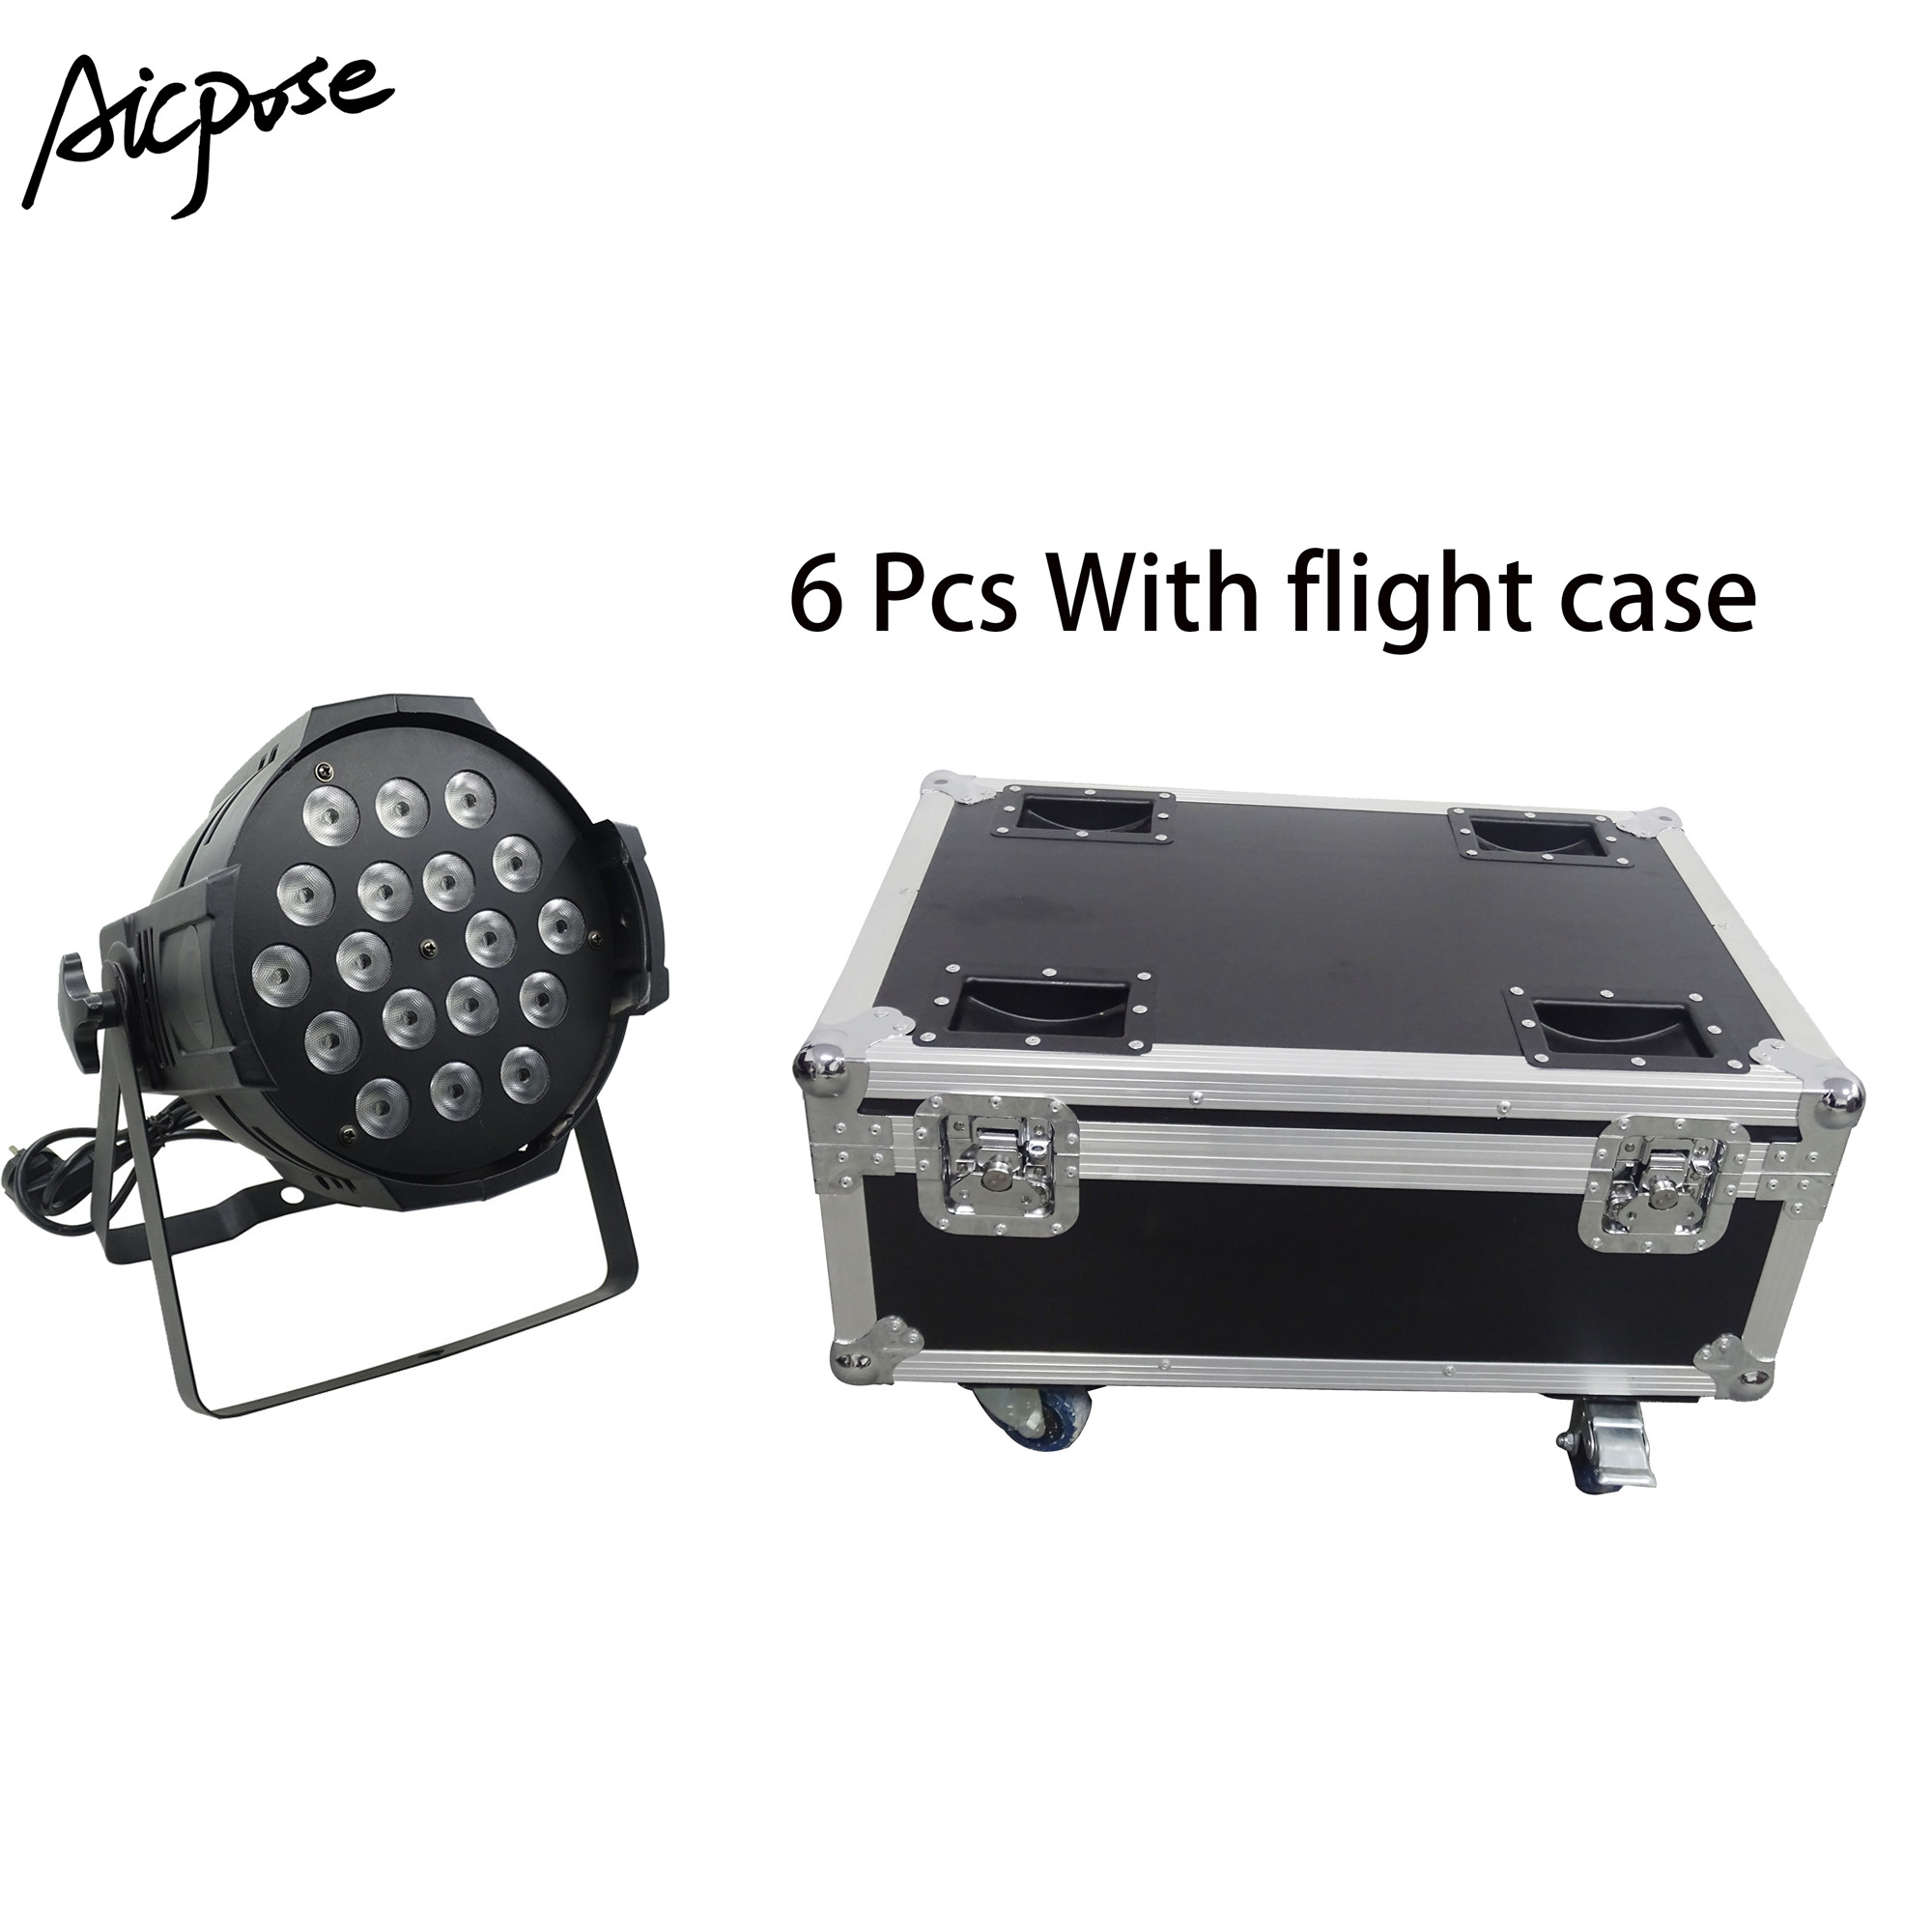 6pcs 18*12w Power In And Out  LED Par Lights 18x12W RGBW 4in1 Par 64 Led Spotlight Dj Projector Stage Light With Flight Case